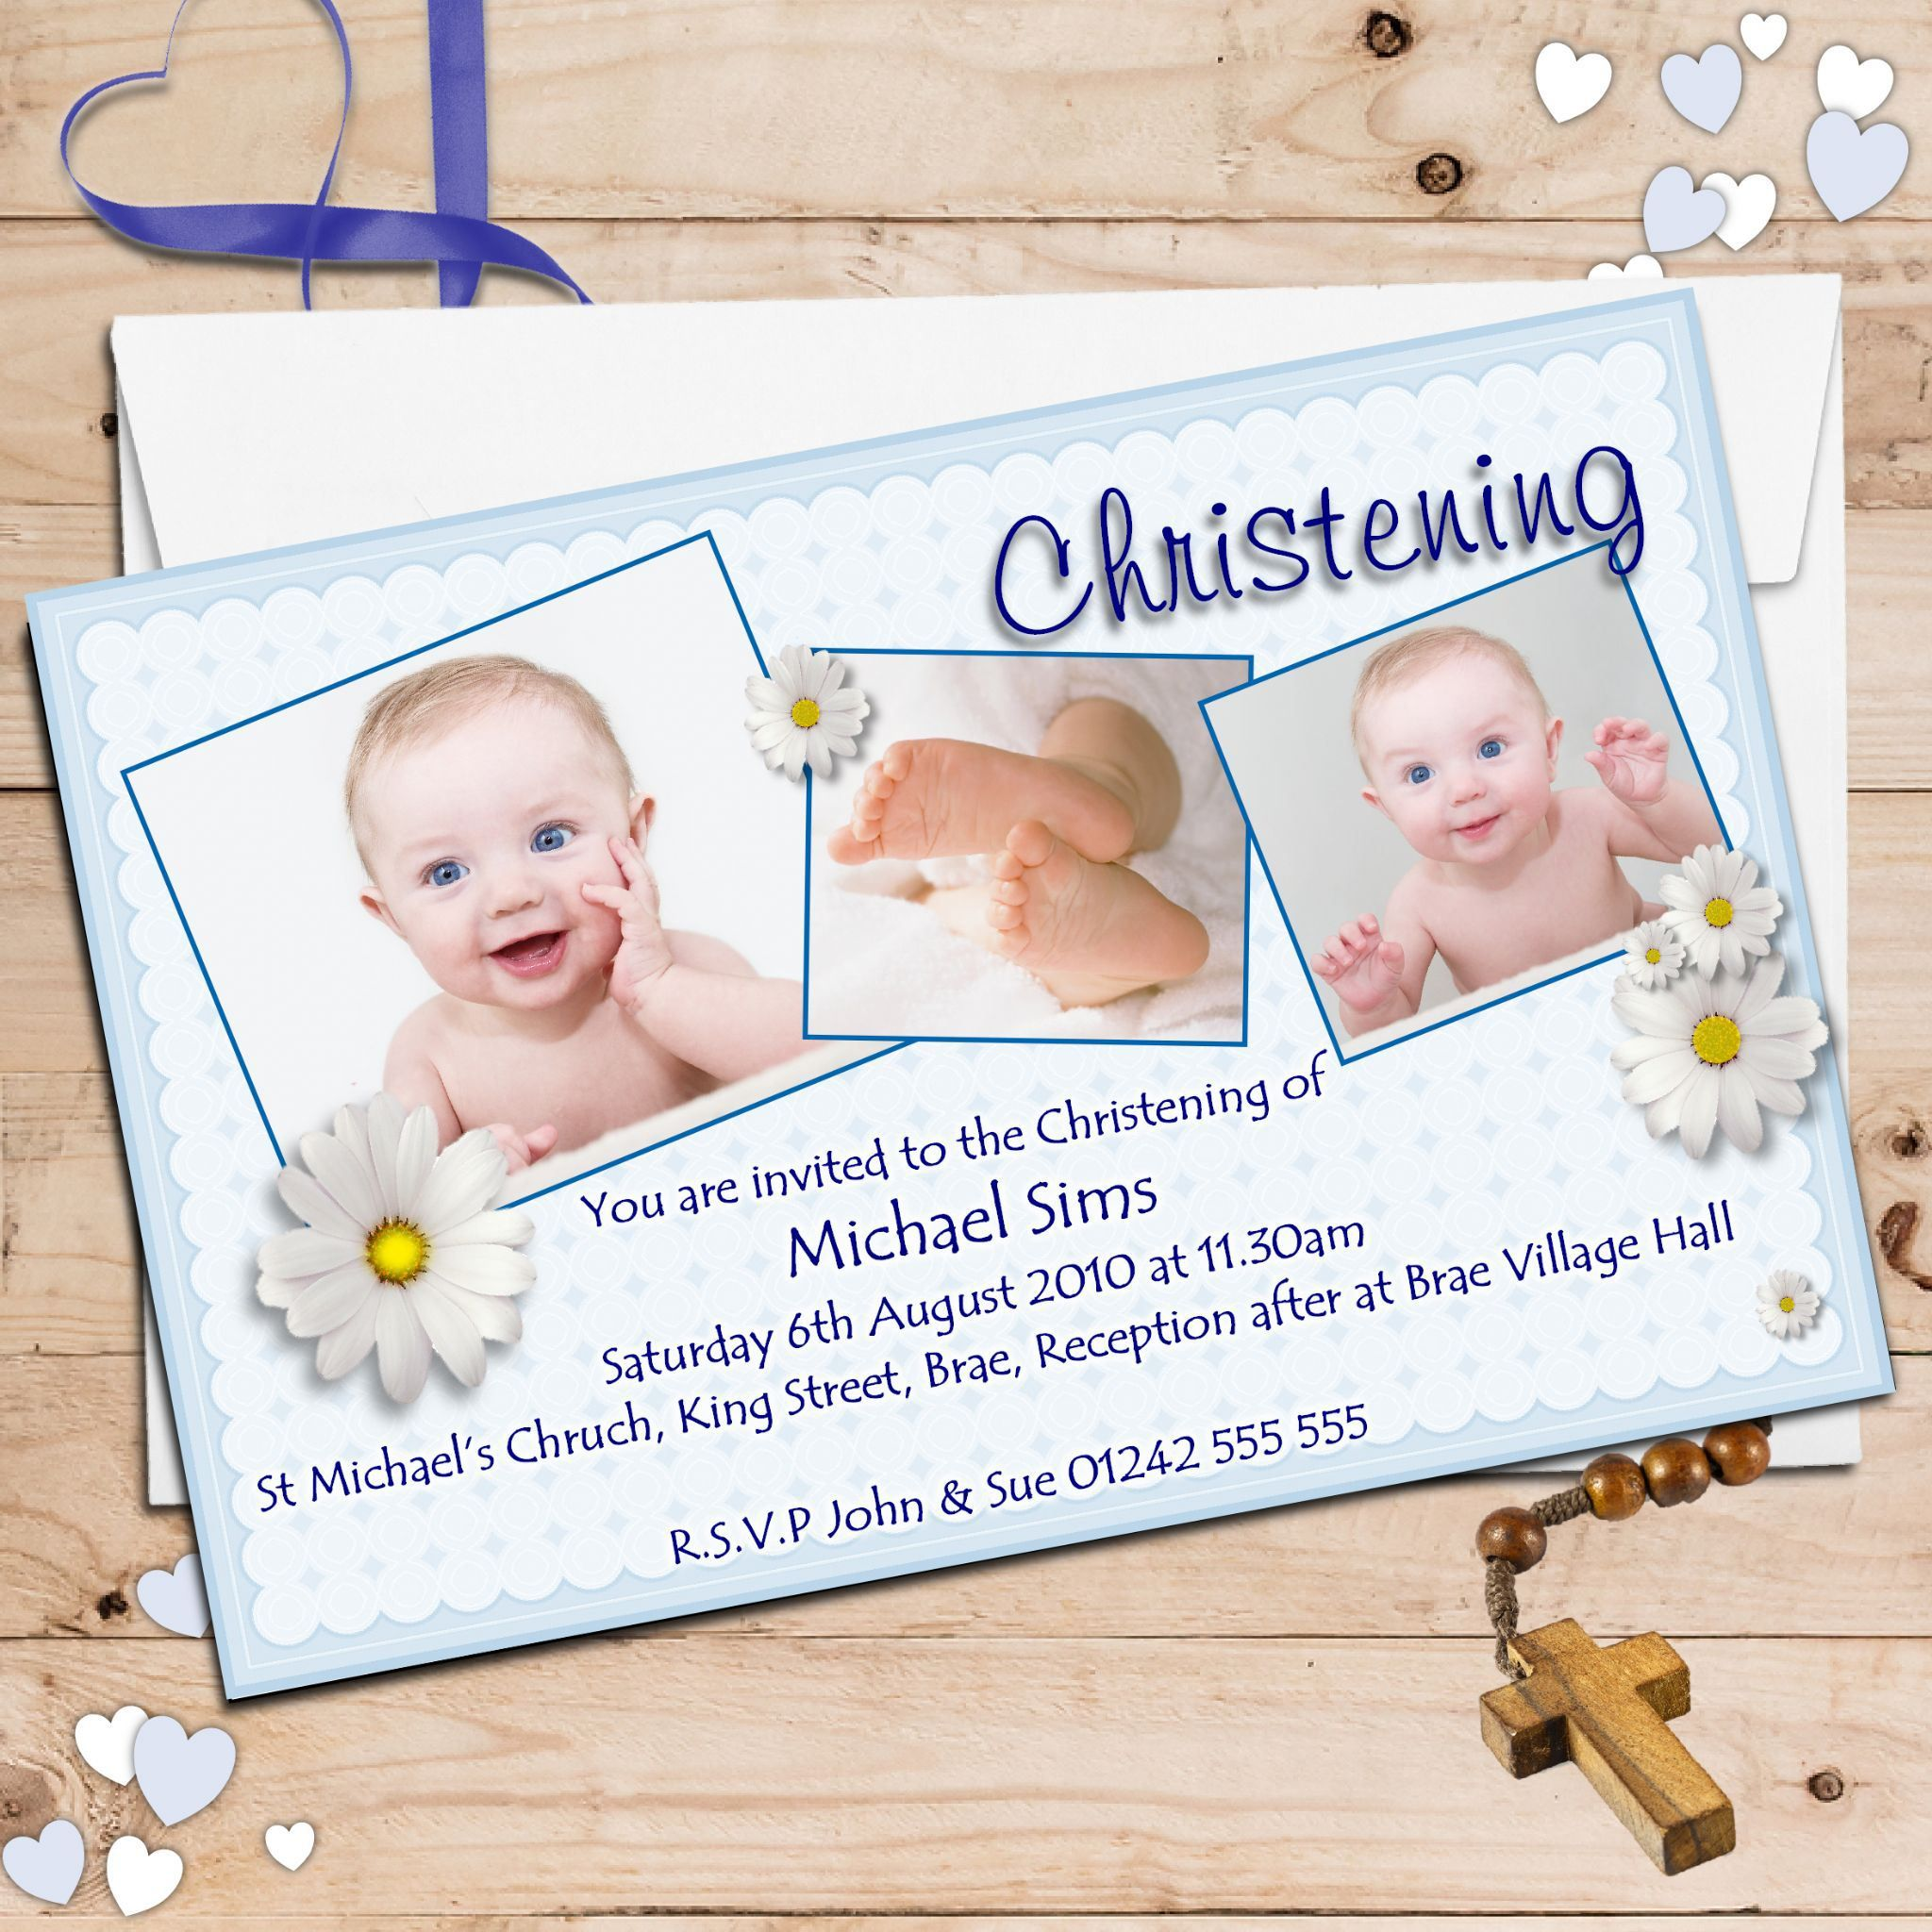 Invitation card for christening invitation card for christening invitation card for christening invitation card for christening blank background superb invitation superb invitation stopboris Gallery